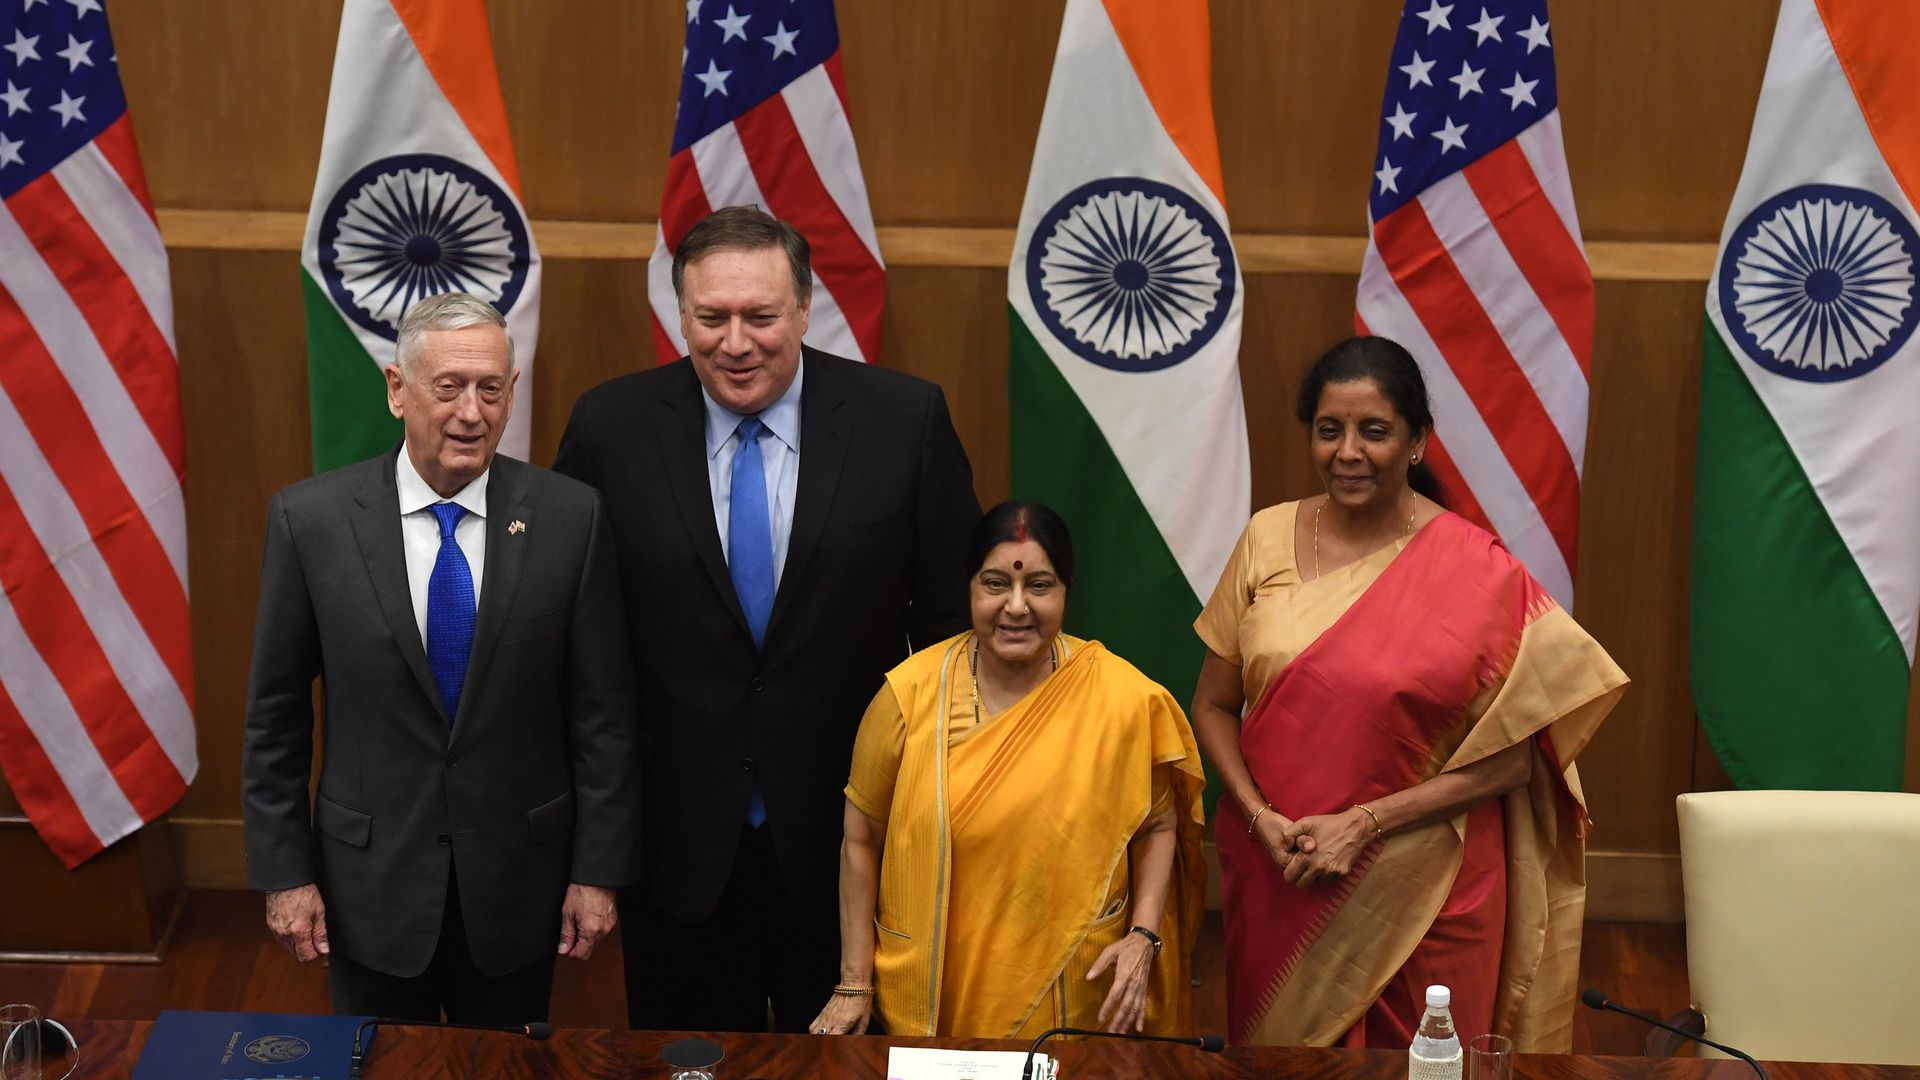 Mattis and Pompeo with their Indian counterparts at a press briefing